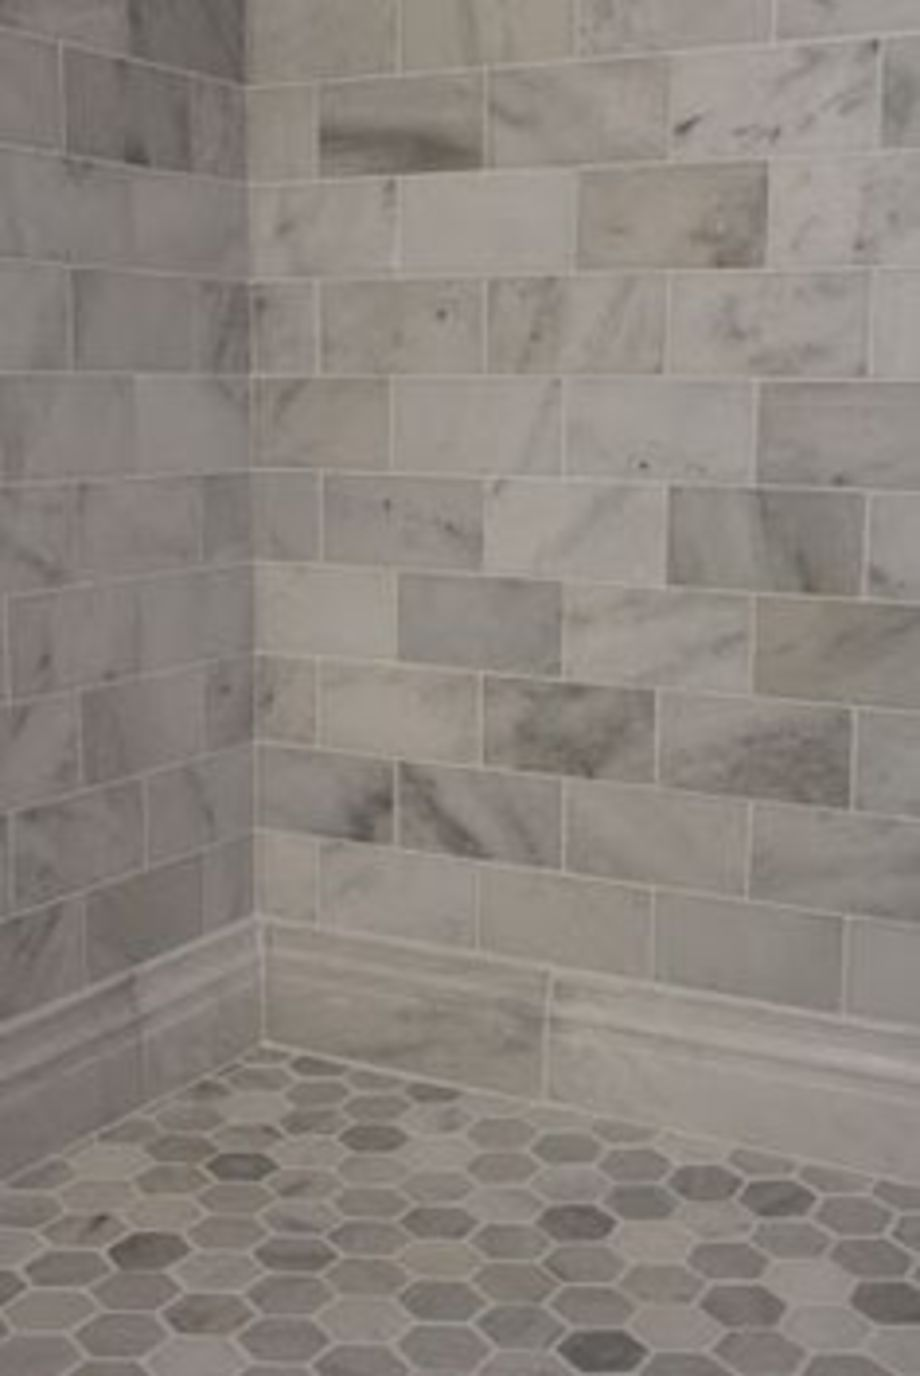 Amazing 91 Simple and Practical Hexagon Tile for Your Bathroom https://homadein.com/2017/07/08/91-simple-practical-hexagon-tile-bathroom/